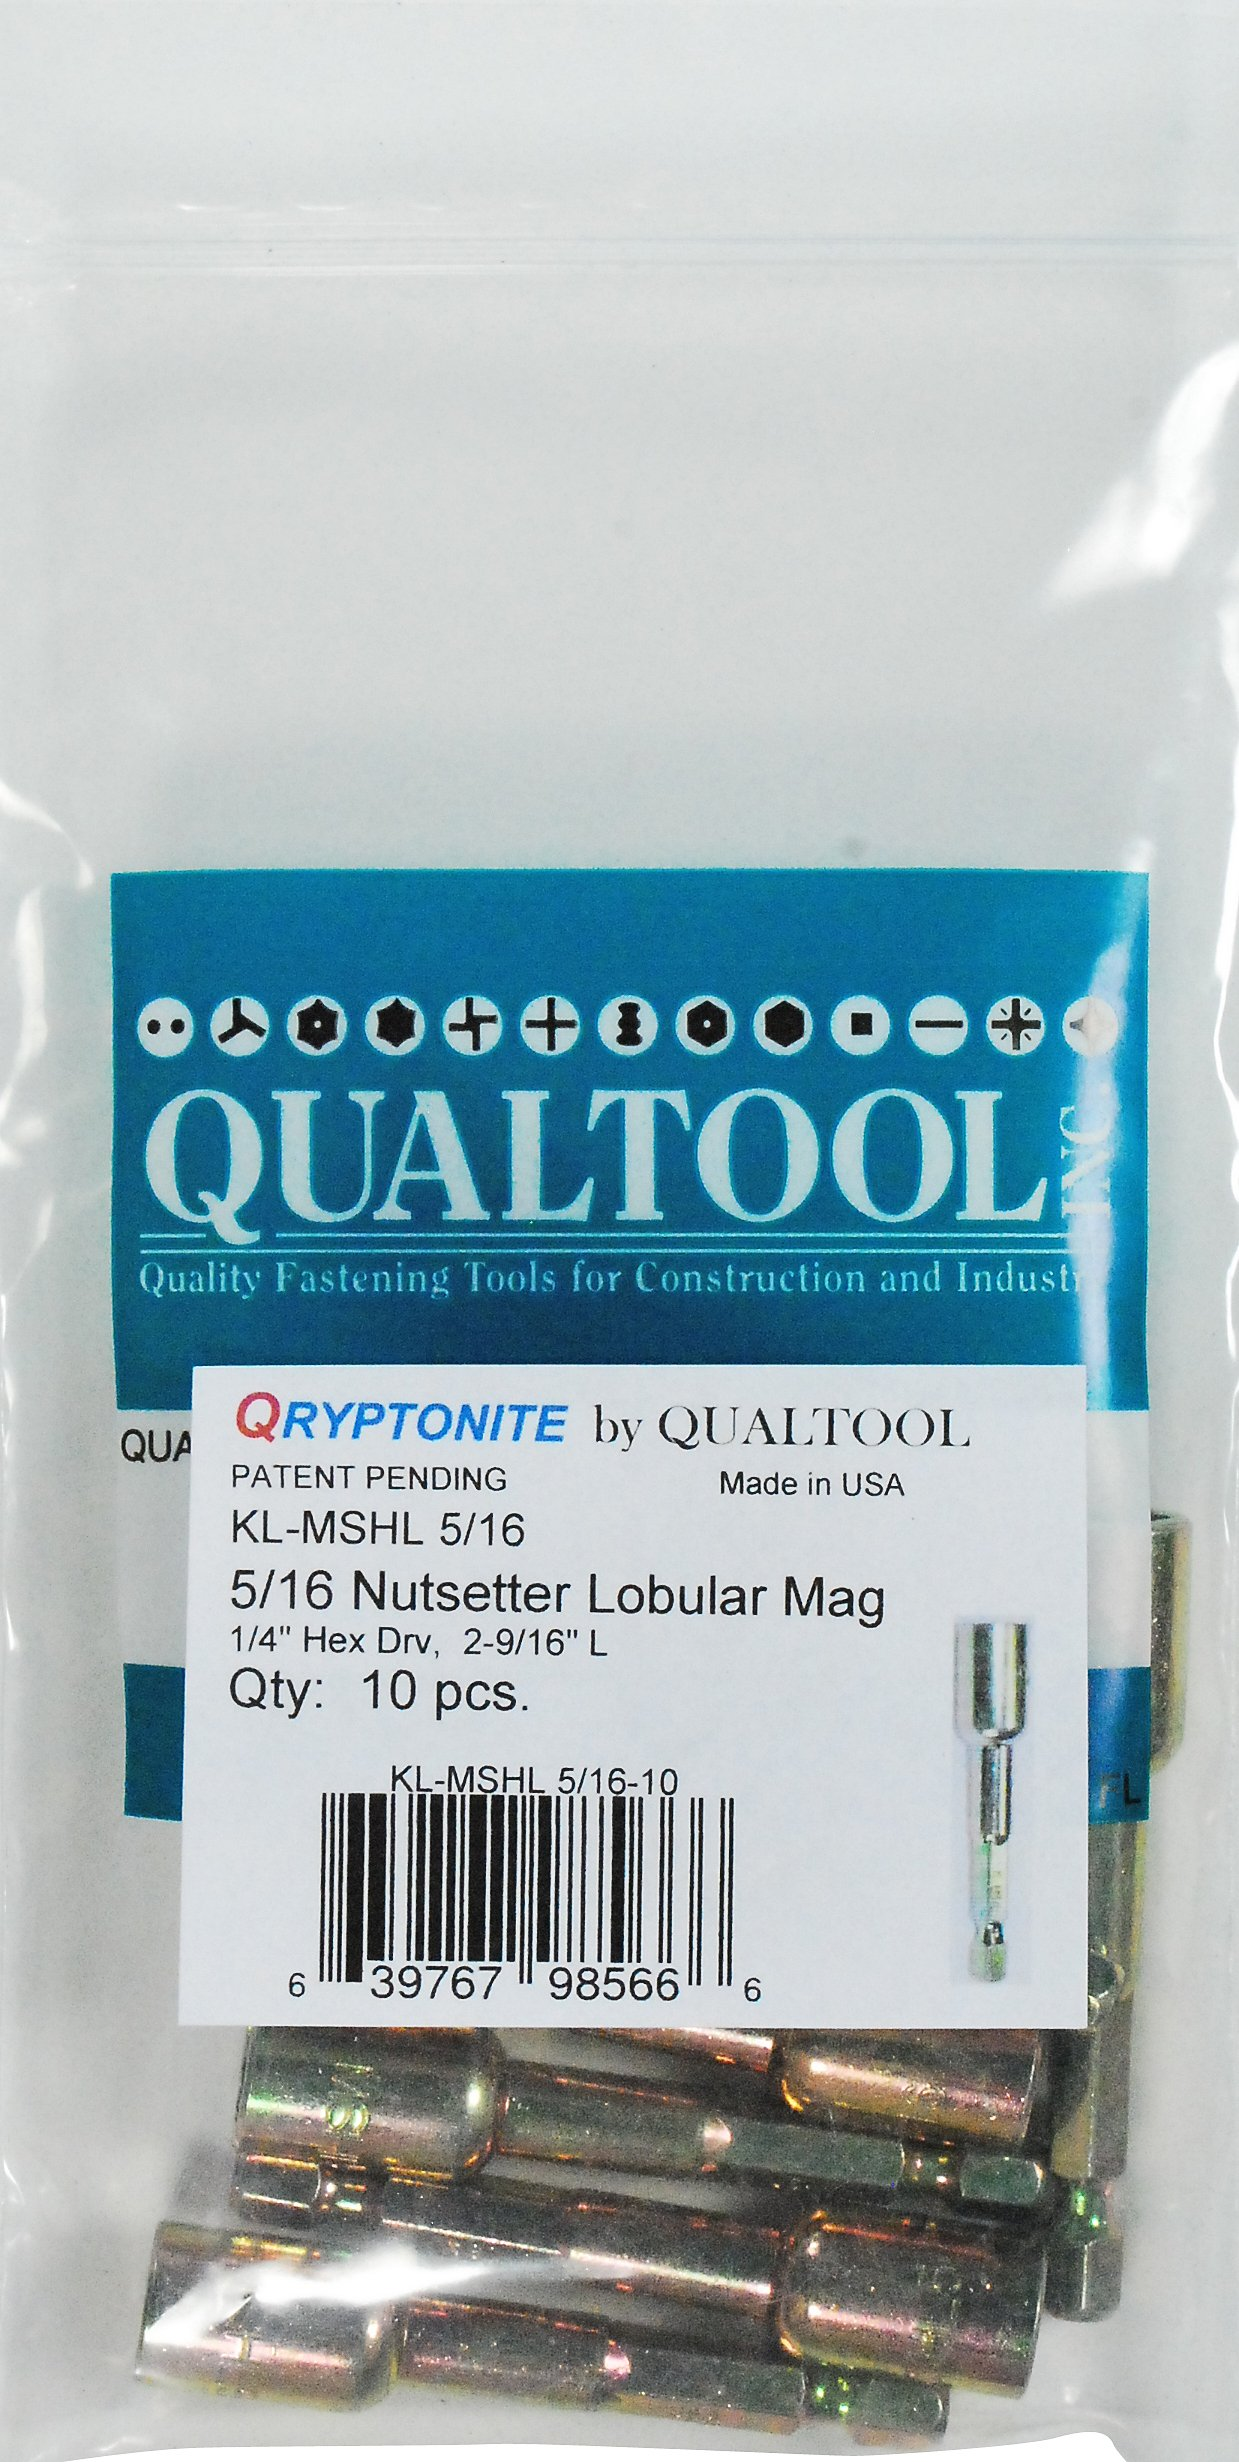 Qualtool Qryptonite KL-MSHL-5/16-10 5/16-Inch Impact Lobular Nutsetter, 10-Pack by Qualtool Qryptonite